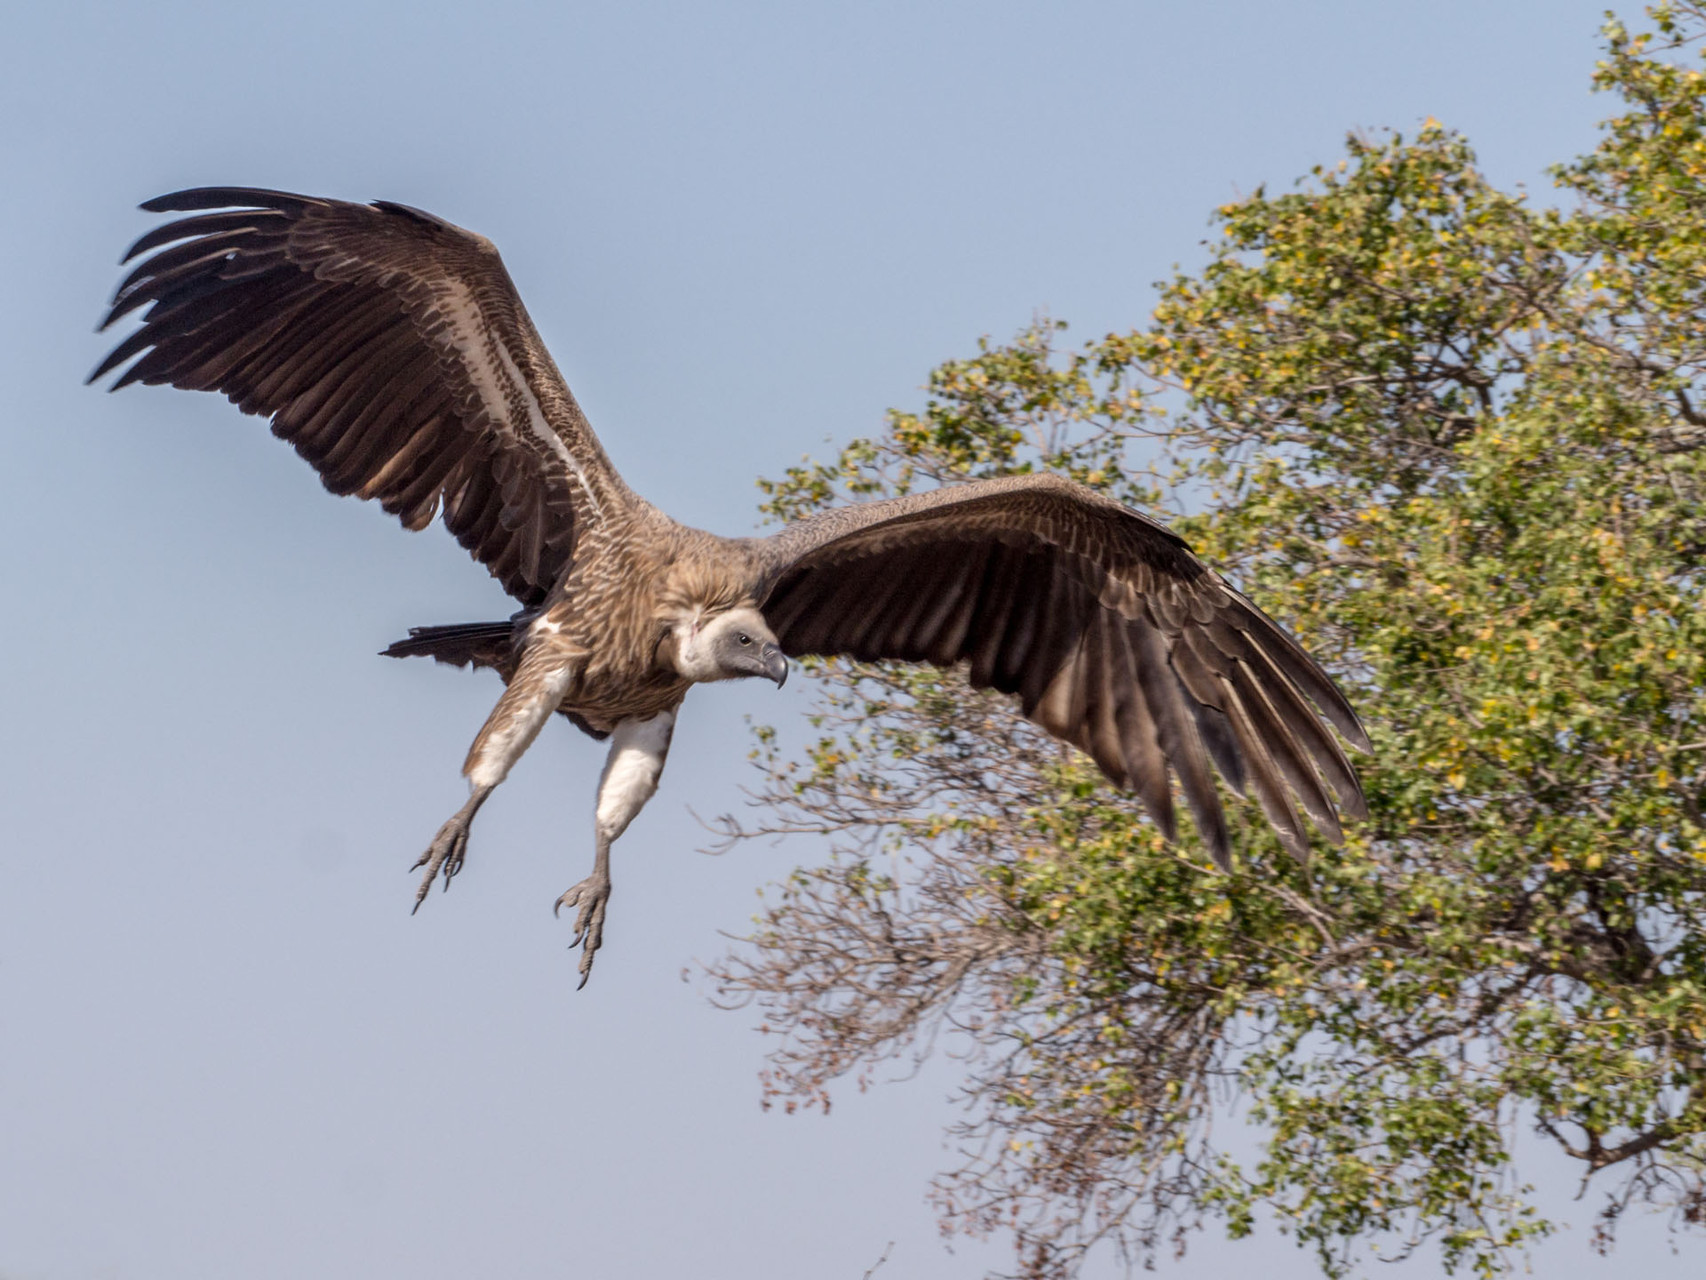 Vulture [Kruger NP, South Africa, 2015]